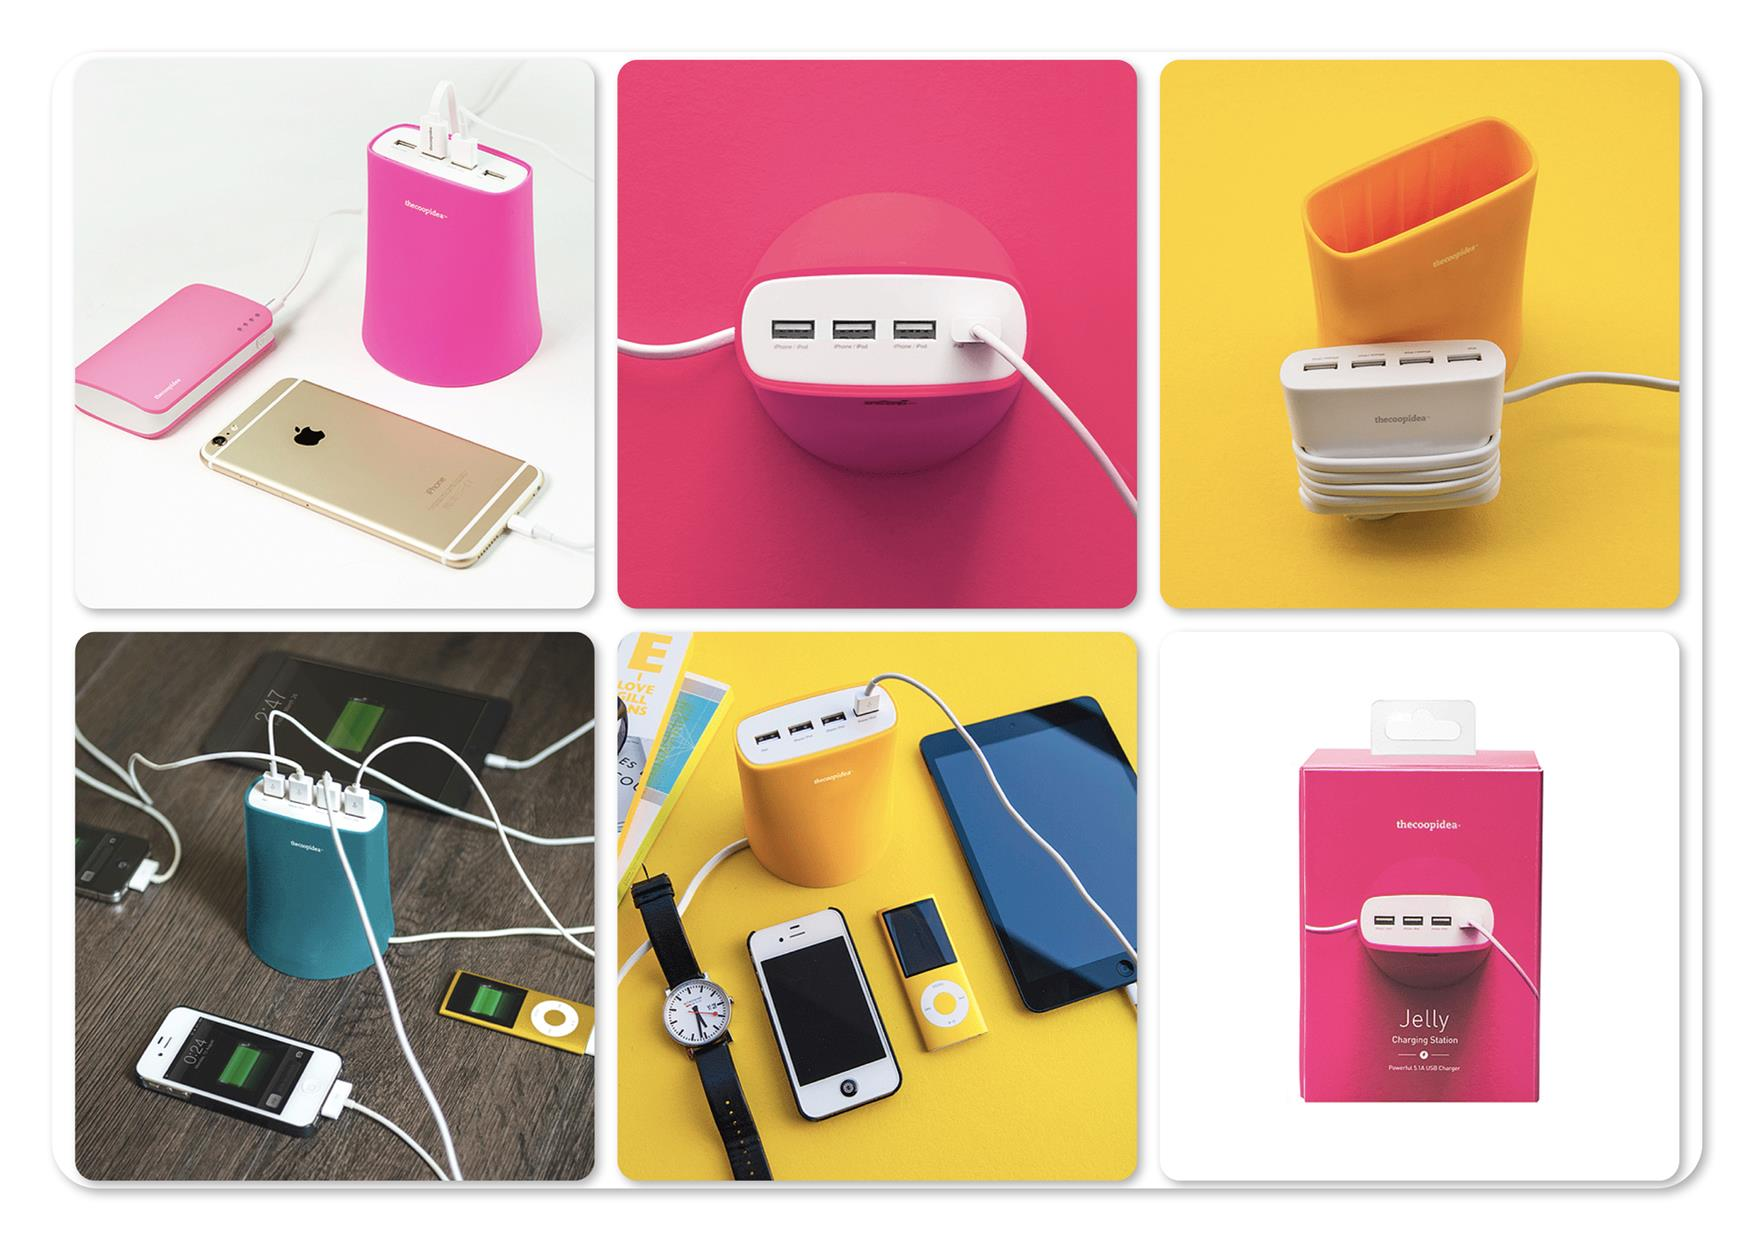 Bdotcom = TheCoopIdea Jelly 5.1A 4 Port USB Charging Station (Pink)